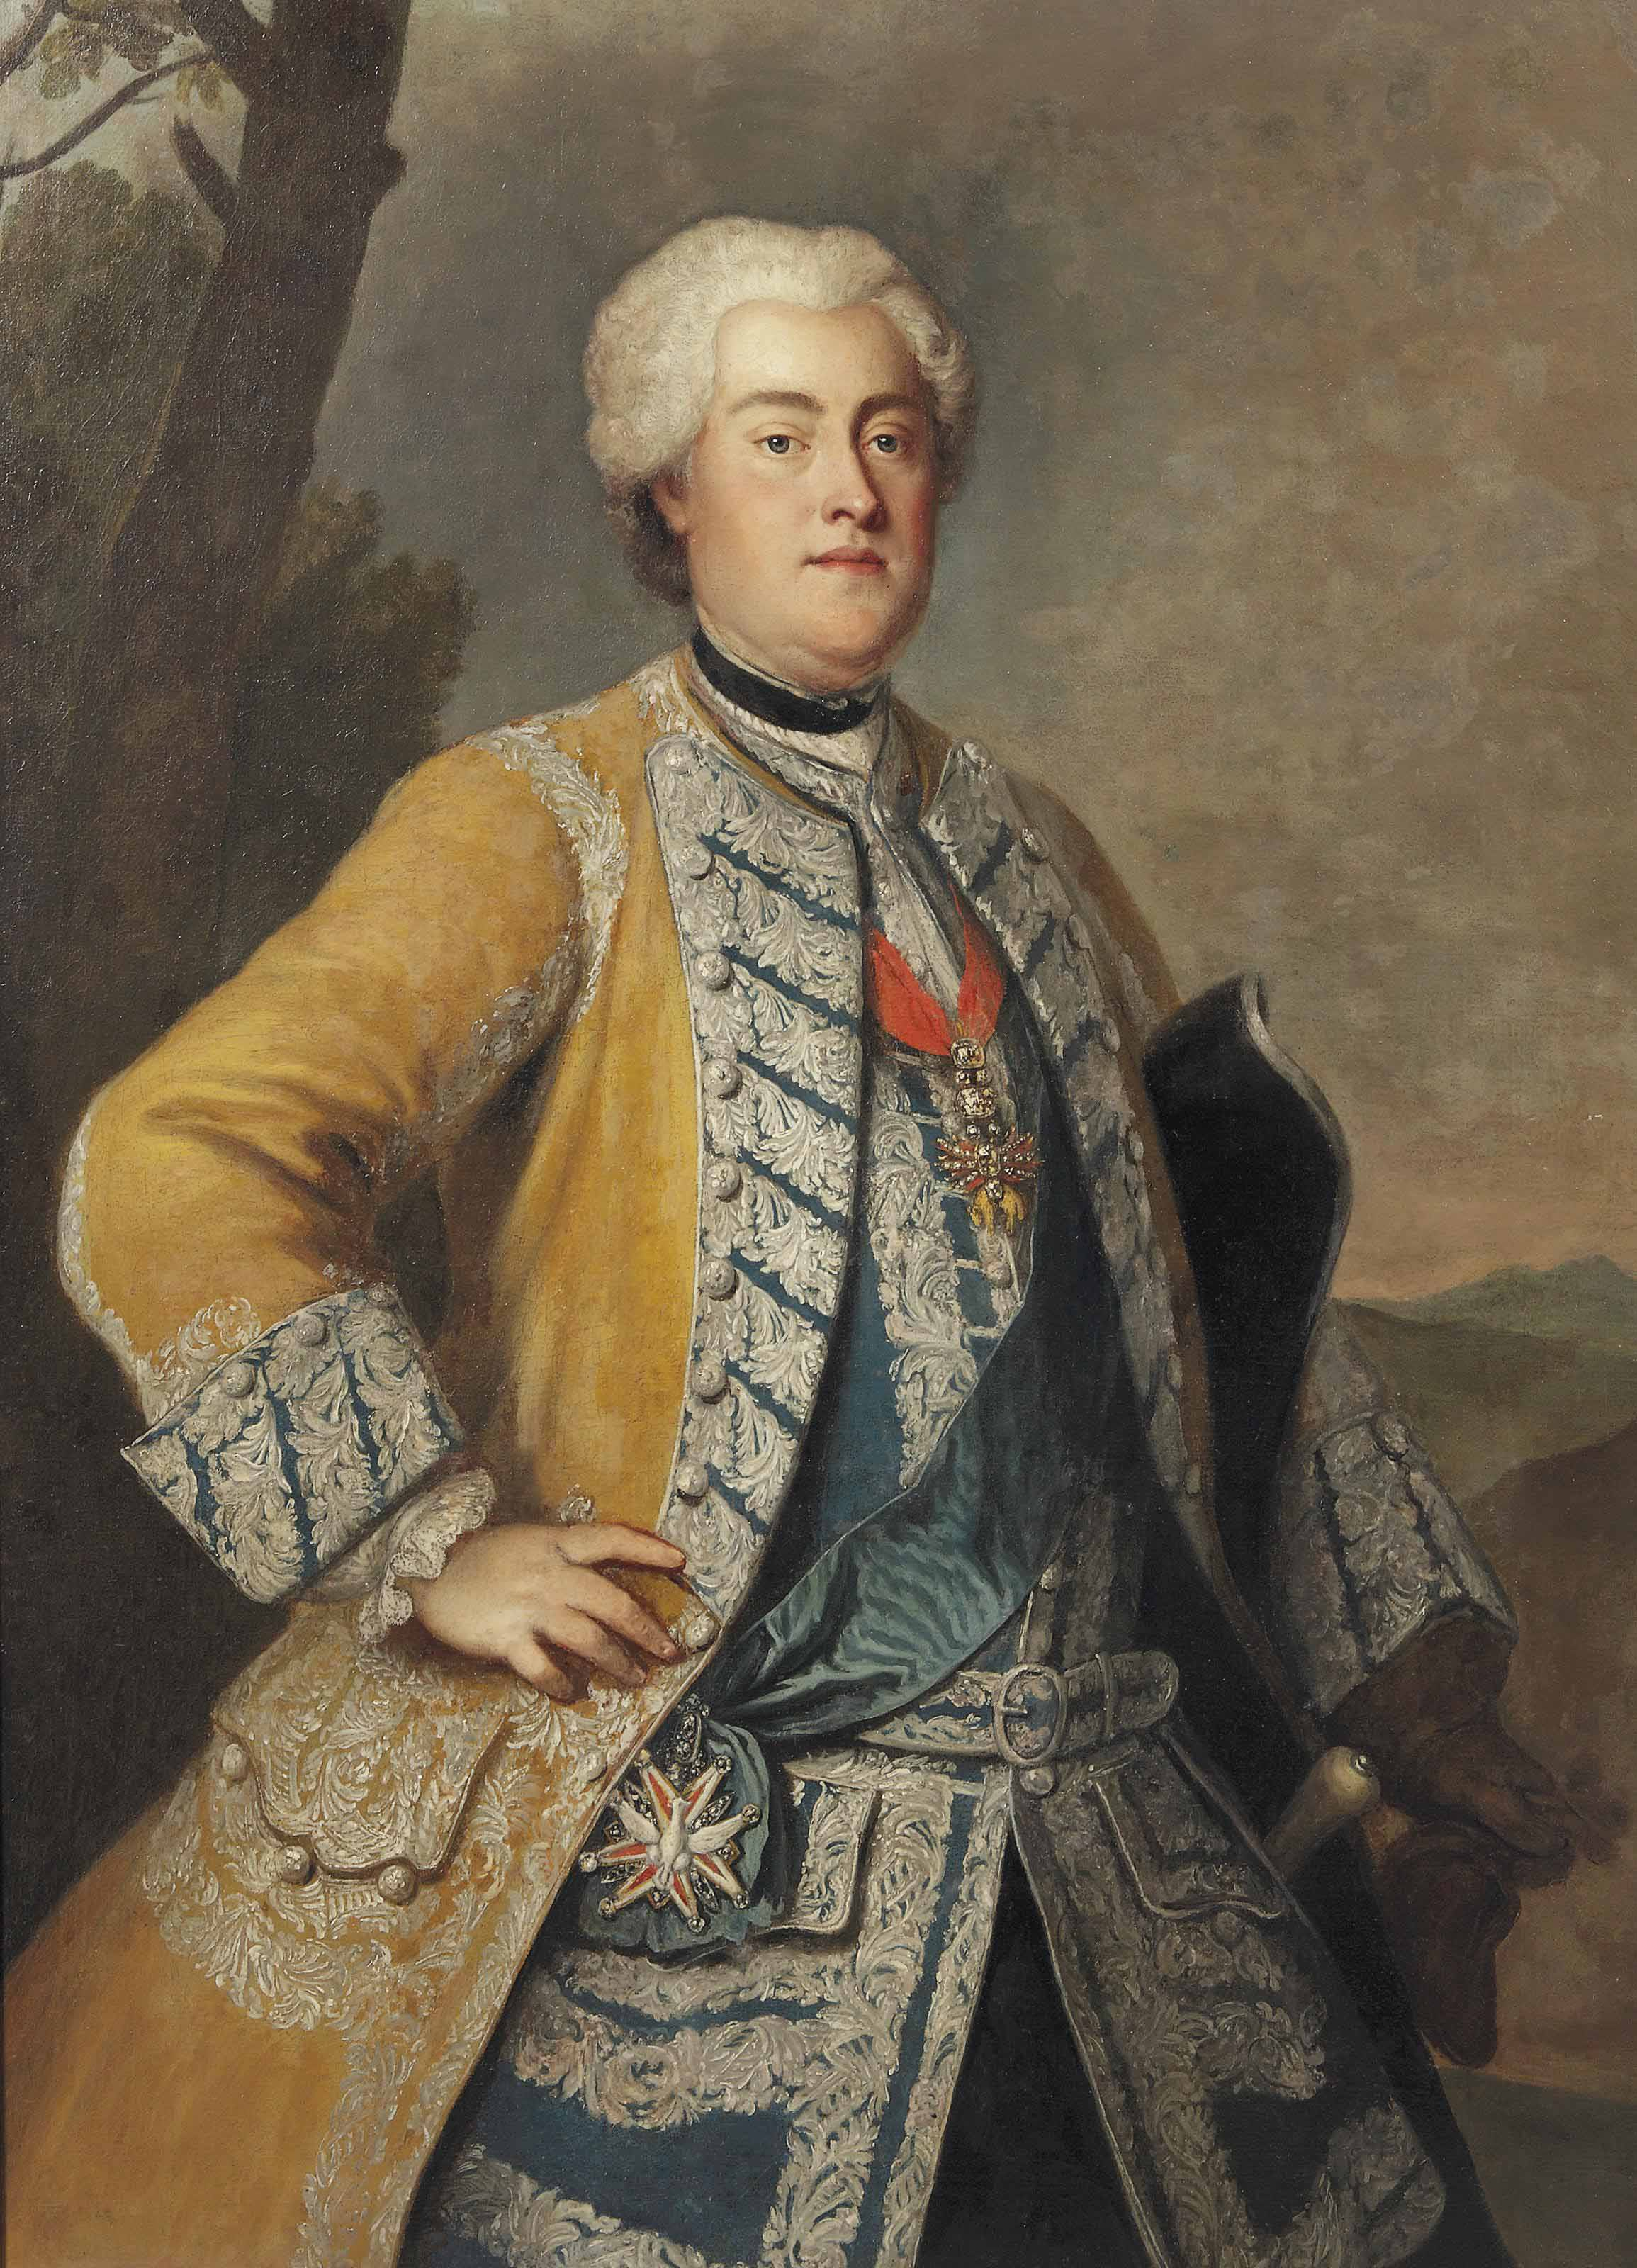 Portrait of King Augustus III of Poland, Frederick August II of Saxony (1696-1763), three-quarter-length, with the Order of the Golden Fleece and the Order of the White Eagle, standing in a landscape